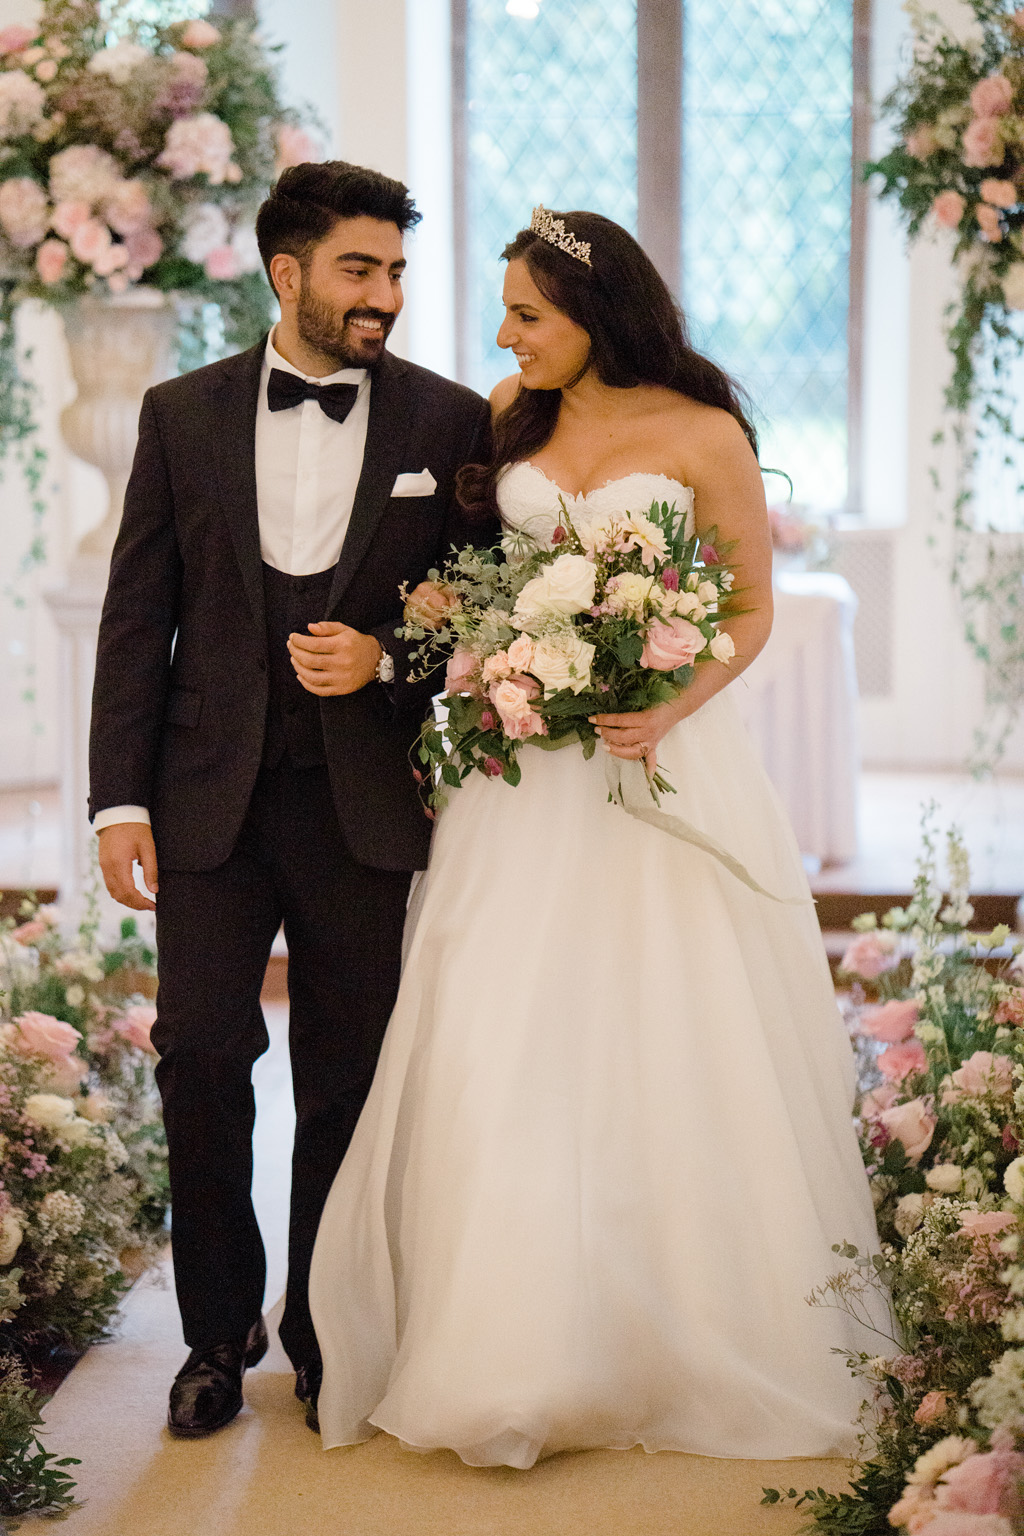 horse and carriage, classic bride and groom styling at Clearwell Castle, credit Sara Cooper Photography on English Wedding